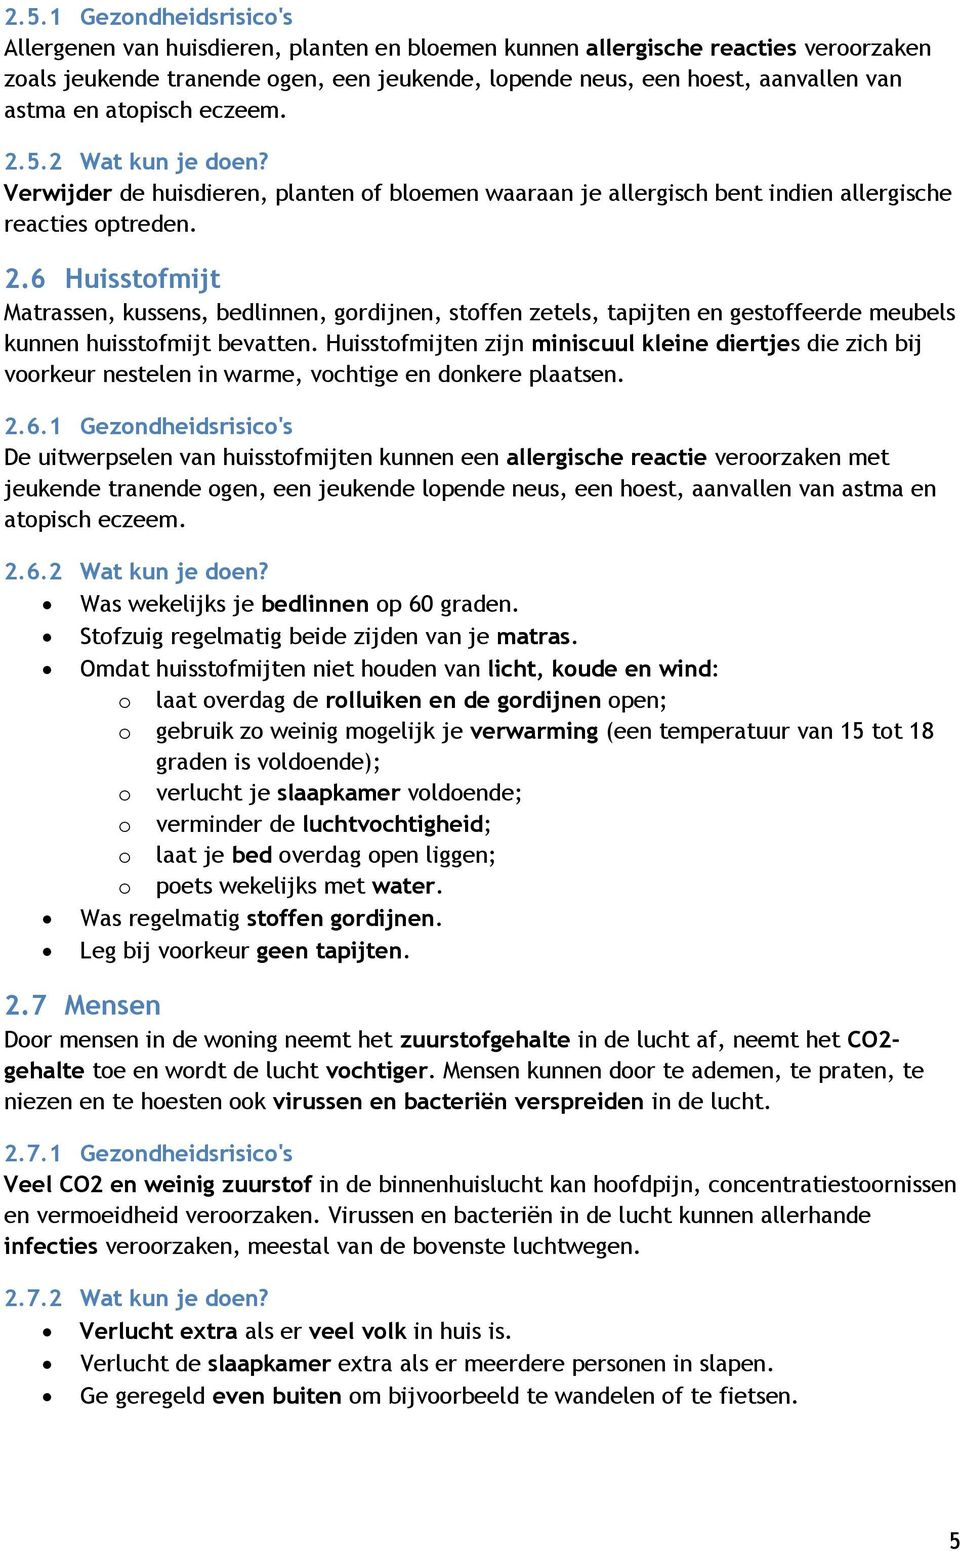 Luchtvervuiling in huis - PDF